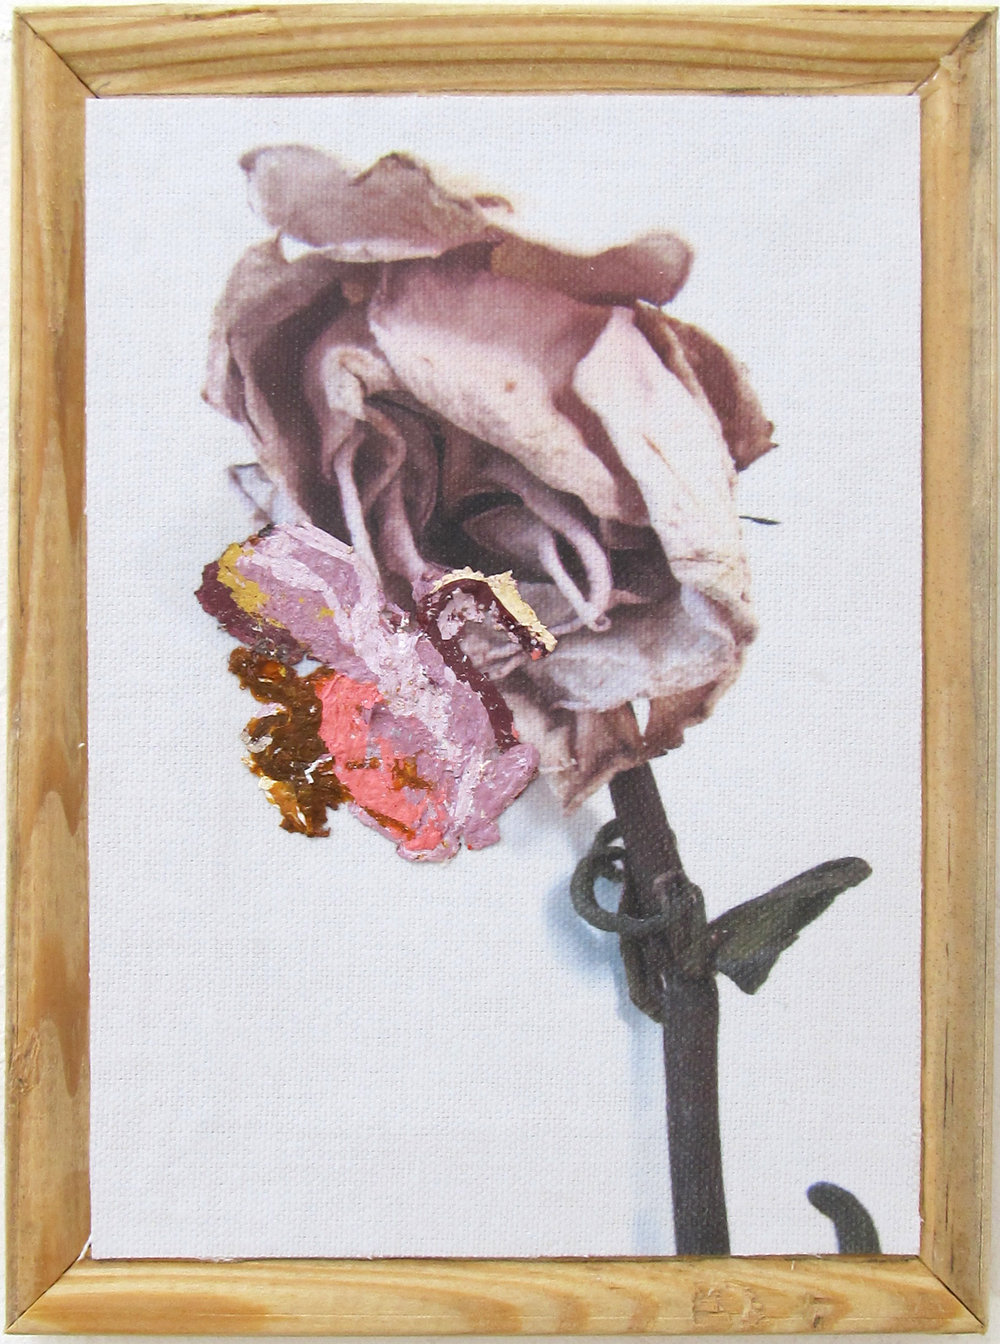 """My Sunburn was a Real Beauty #1   2016 & 2018  8"""" x 6""""  Mixed media: photo print transfer and acrylic paint skins on stretcher bar backs   $60  each or  $150  for all three/triptych"""